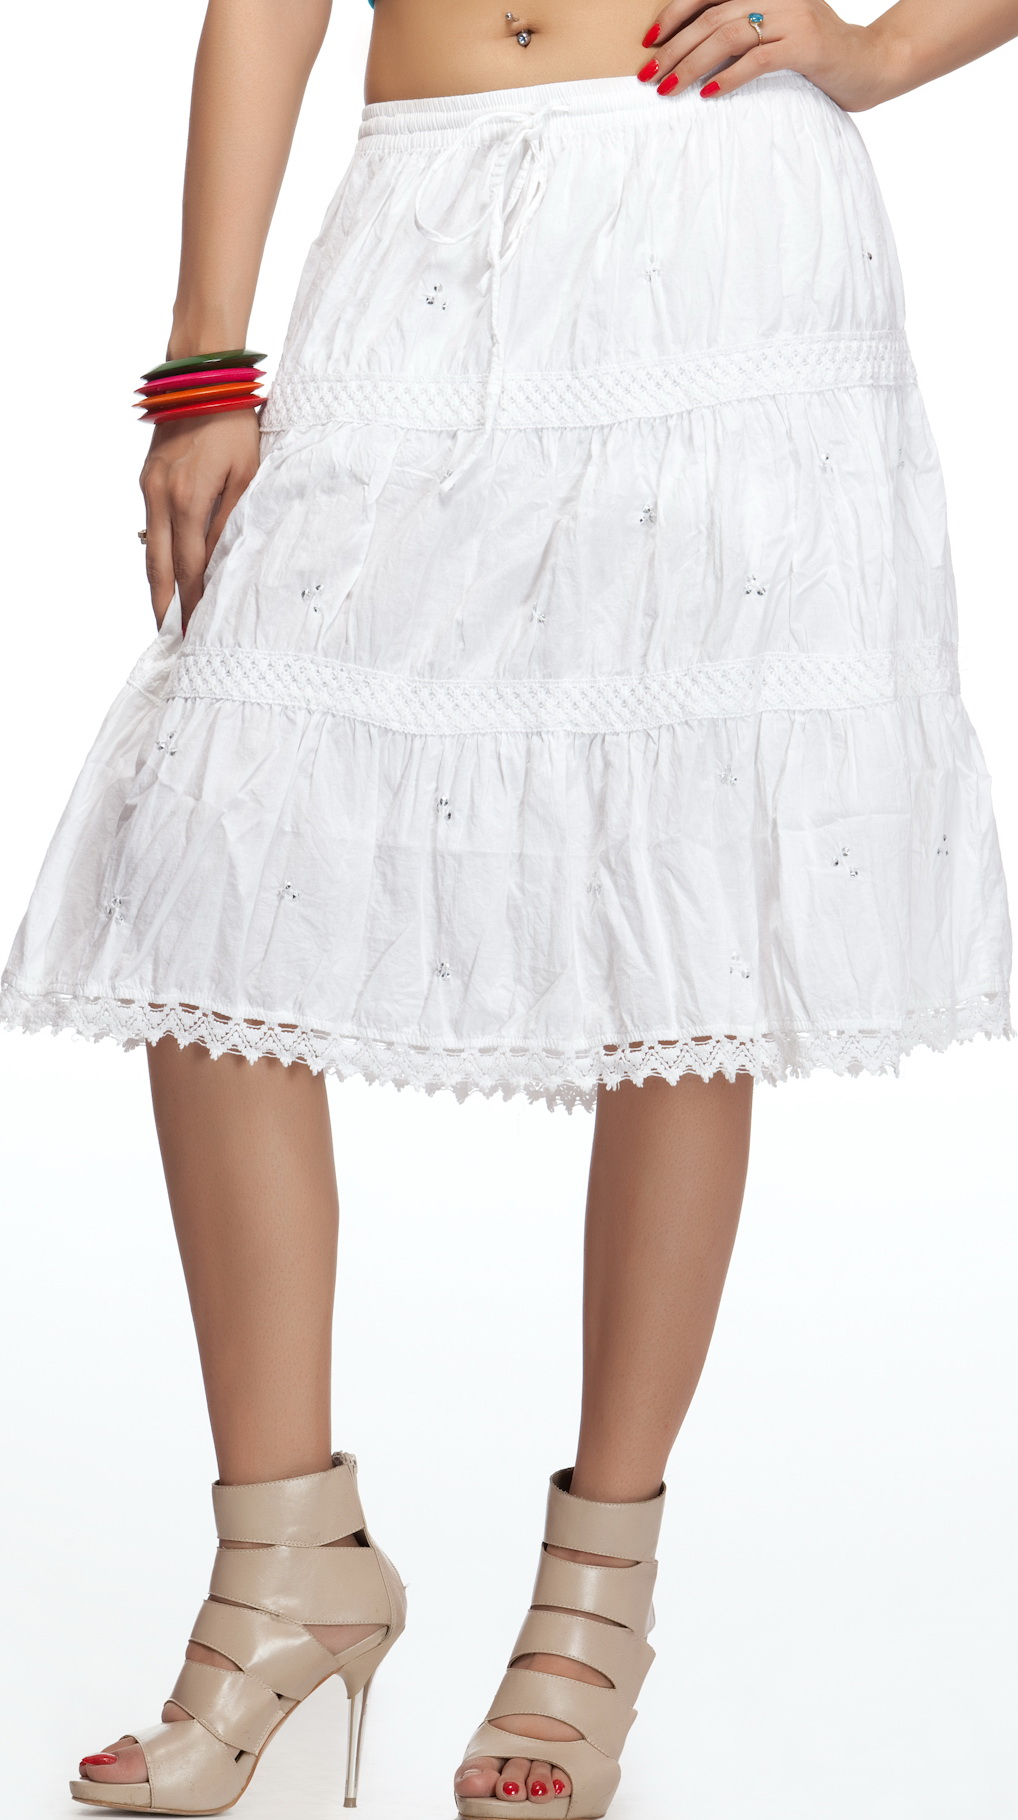 Choose your little white dress in silky, seductive, body-hugging satin with a lace overlay, or for a more youthful, flirty look, you might like your short white dress to be a fit-and-flare dress with sequins, tulle, and a corset back.